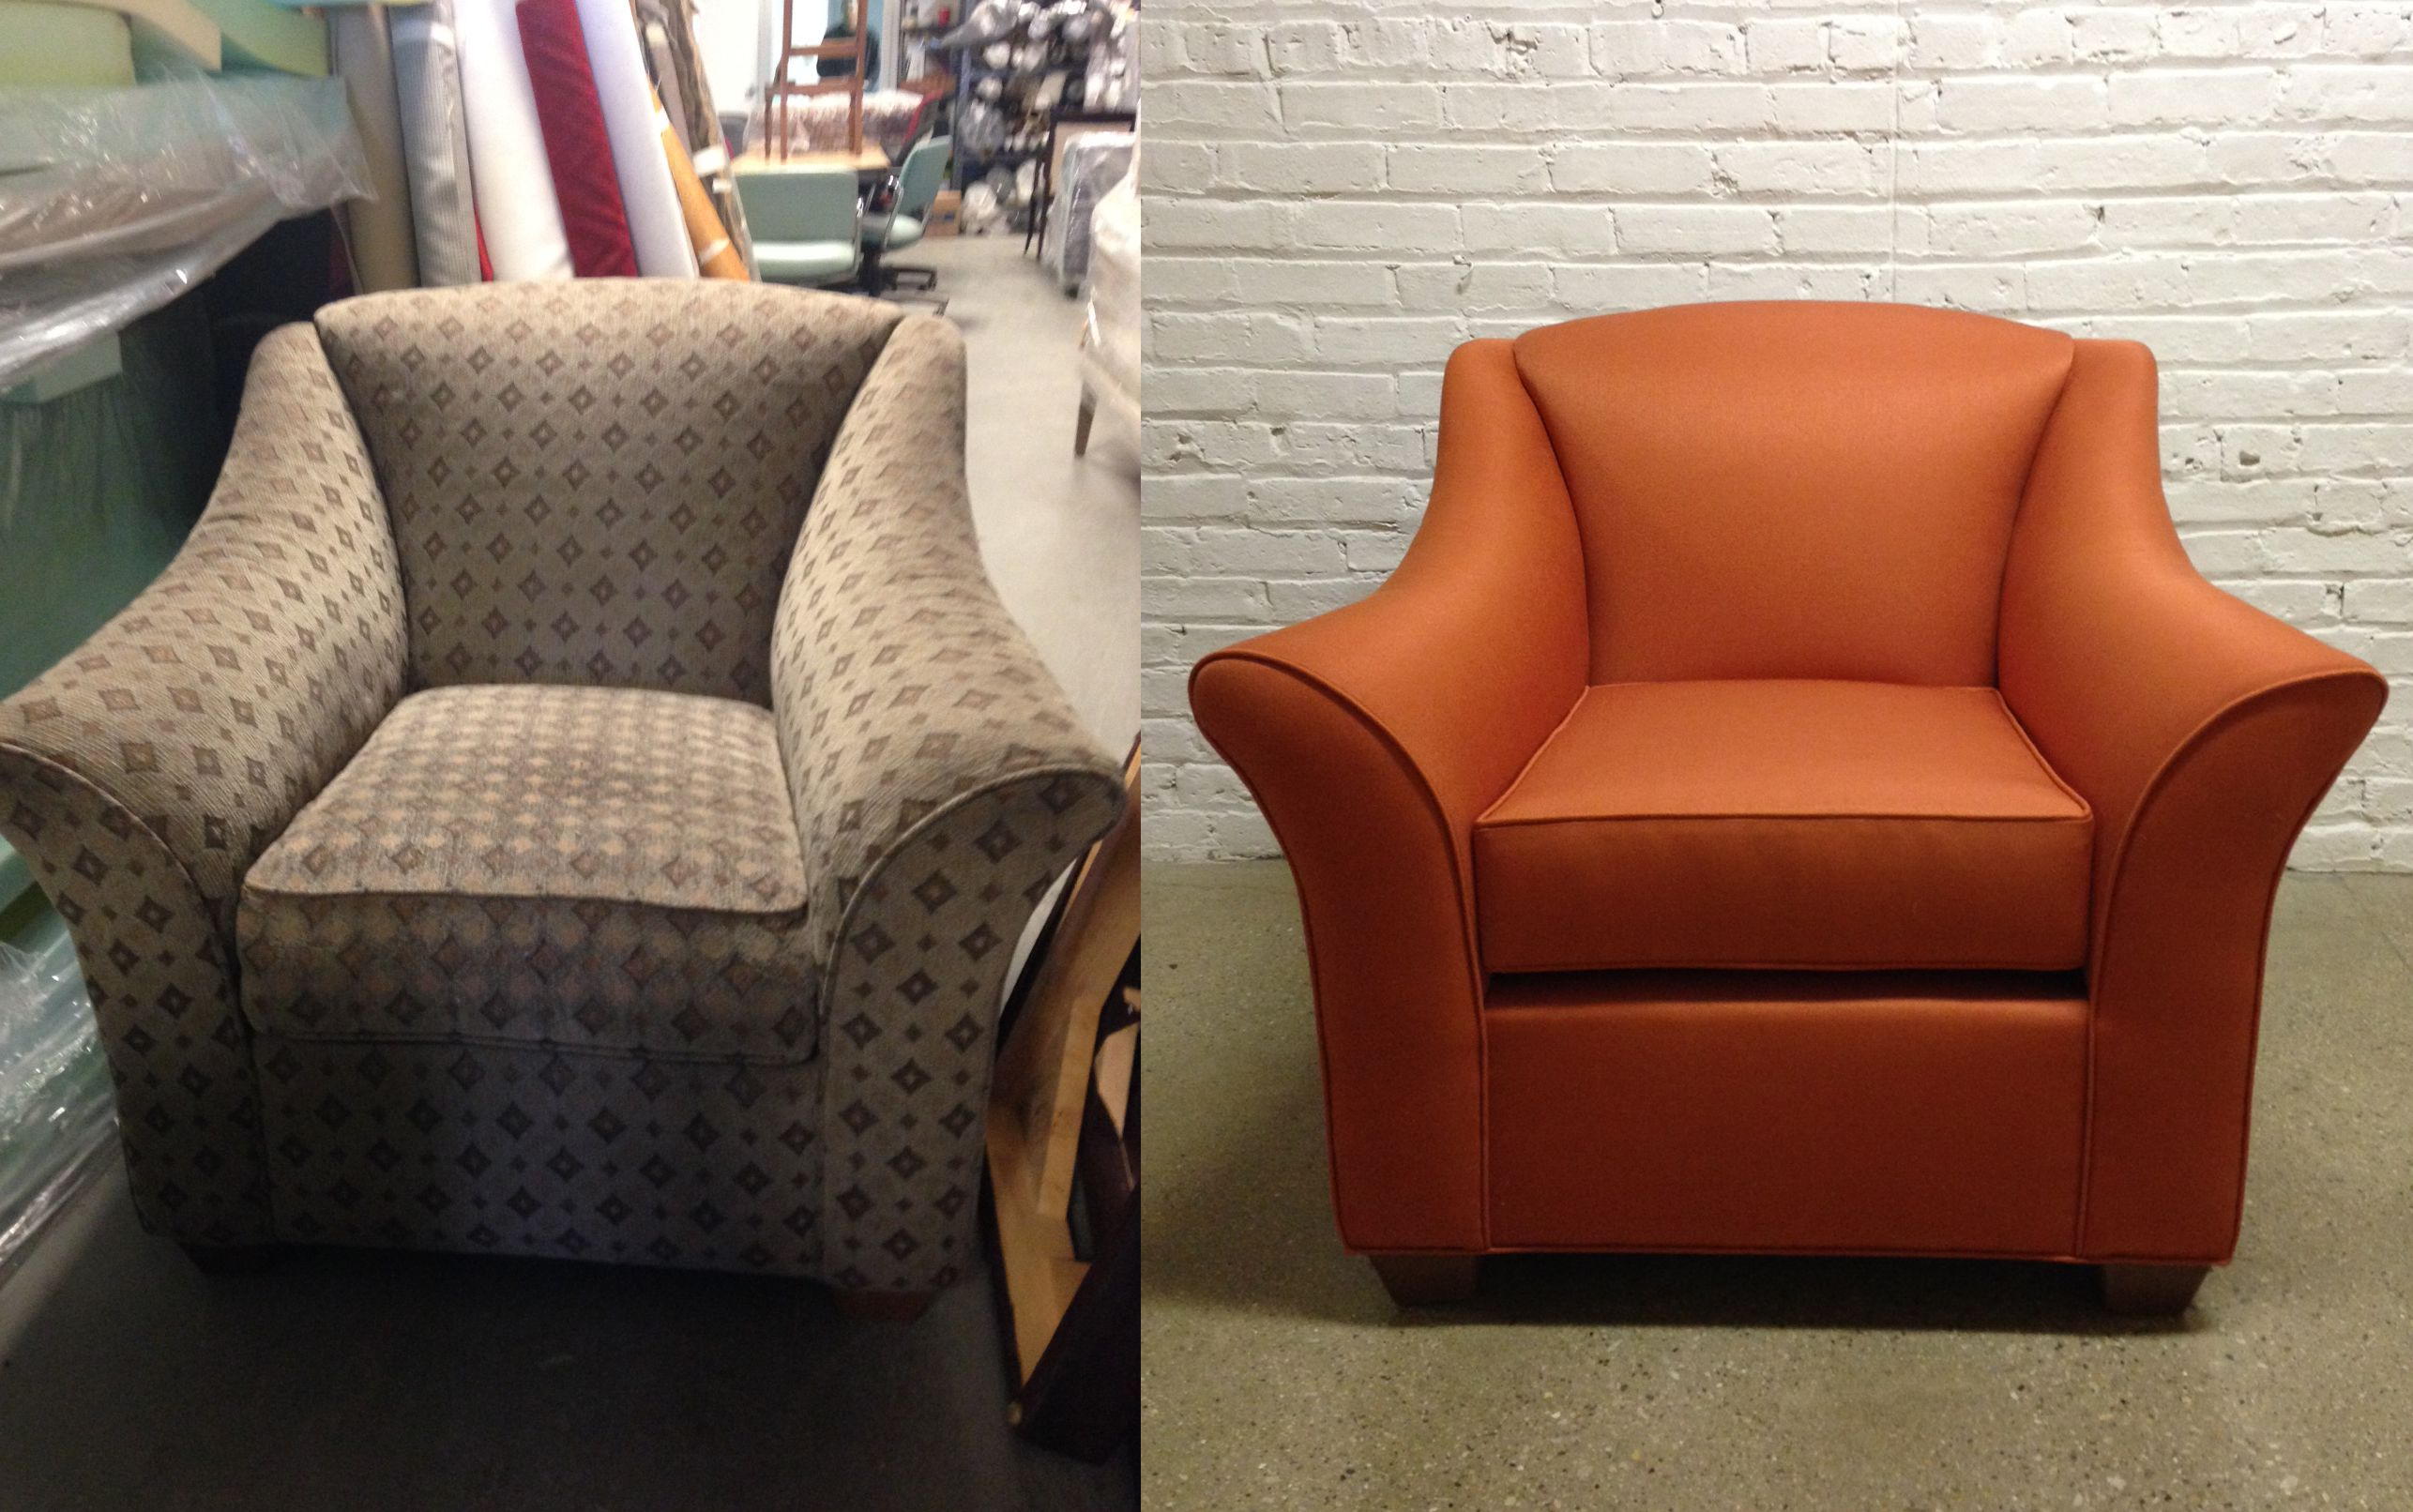 Before and after lounge chair reupholstered in a crypton fabric